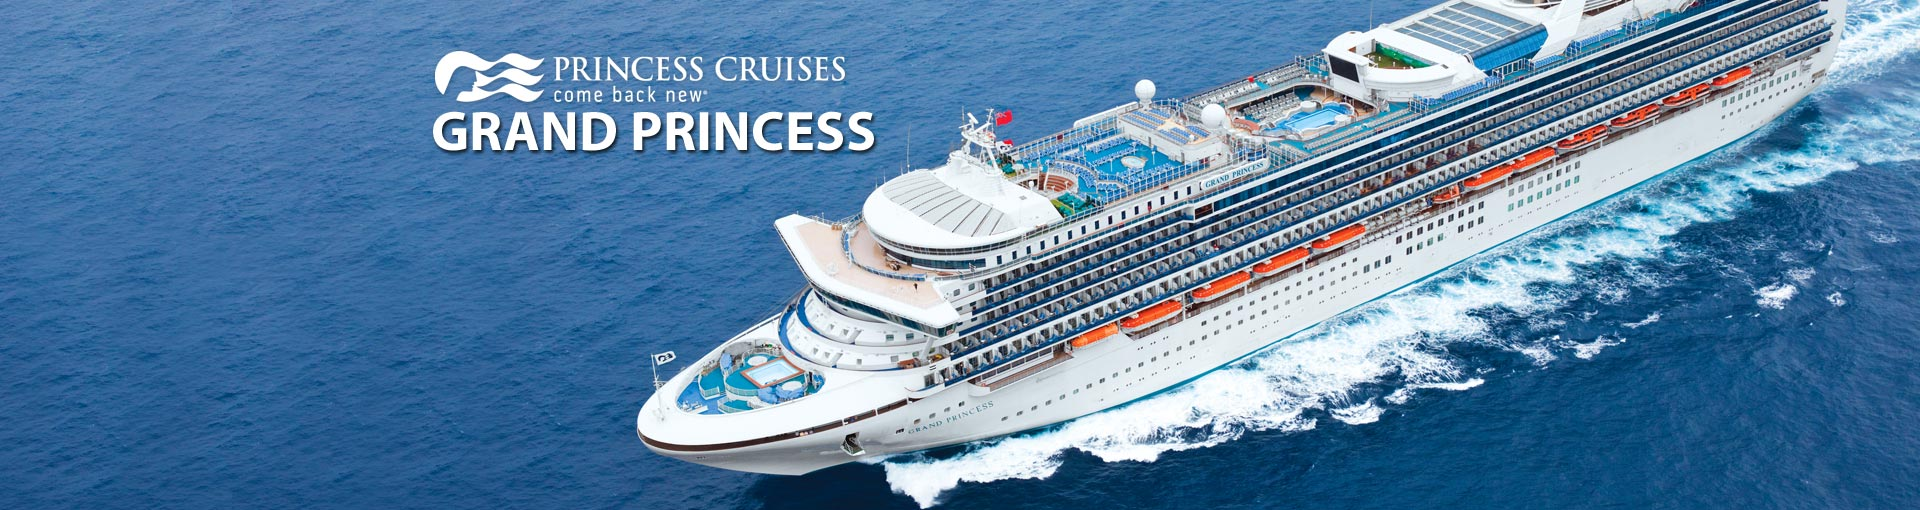 Grand princess cruise ship 2017 and 2018 grand princess princess cruises grand princess cruise ship baanklon Image collections